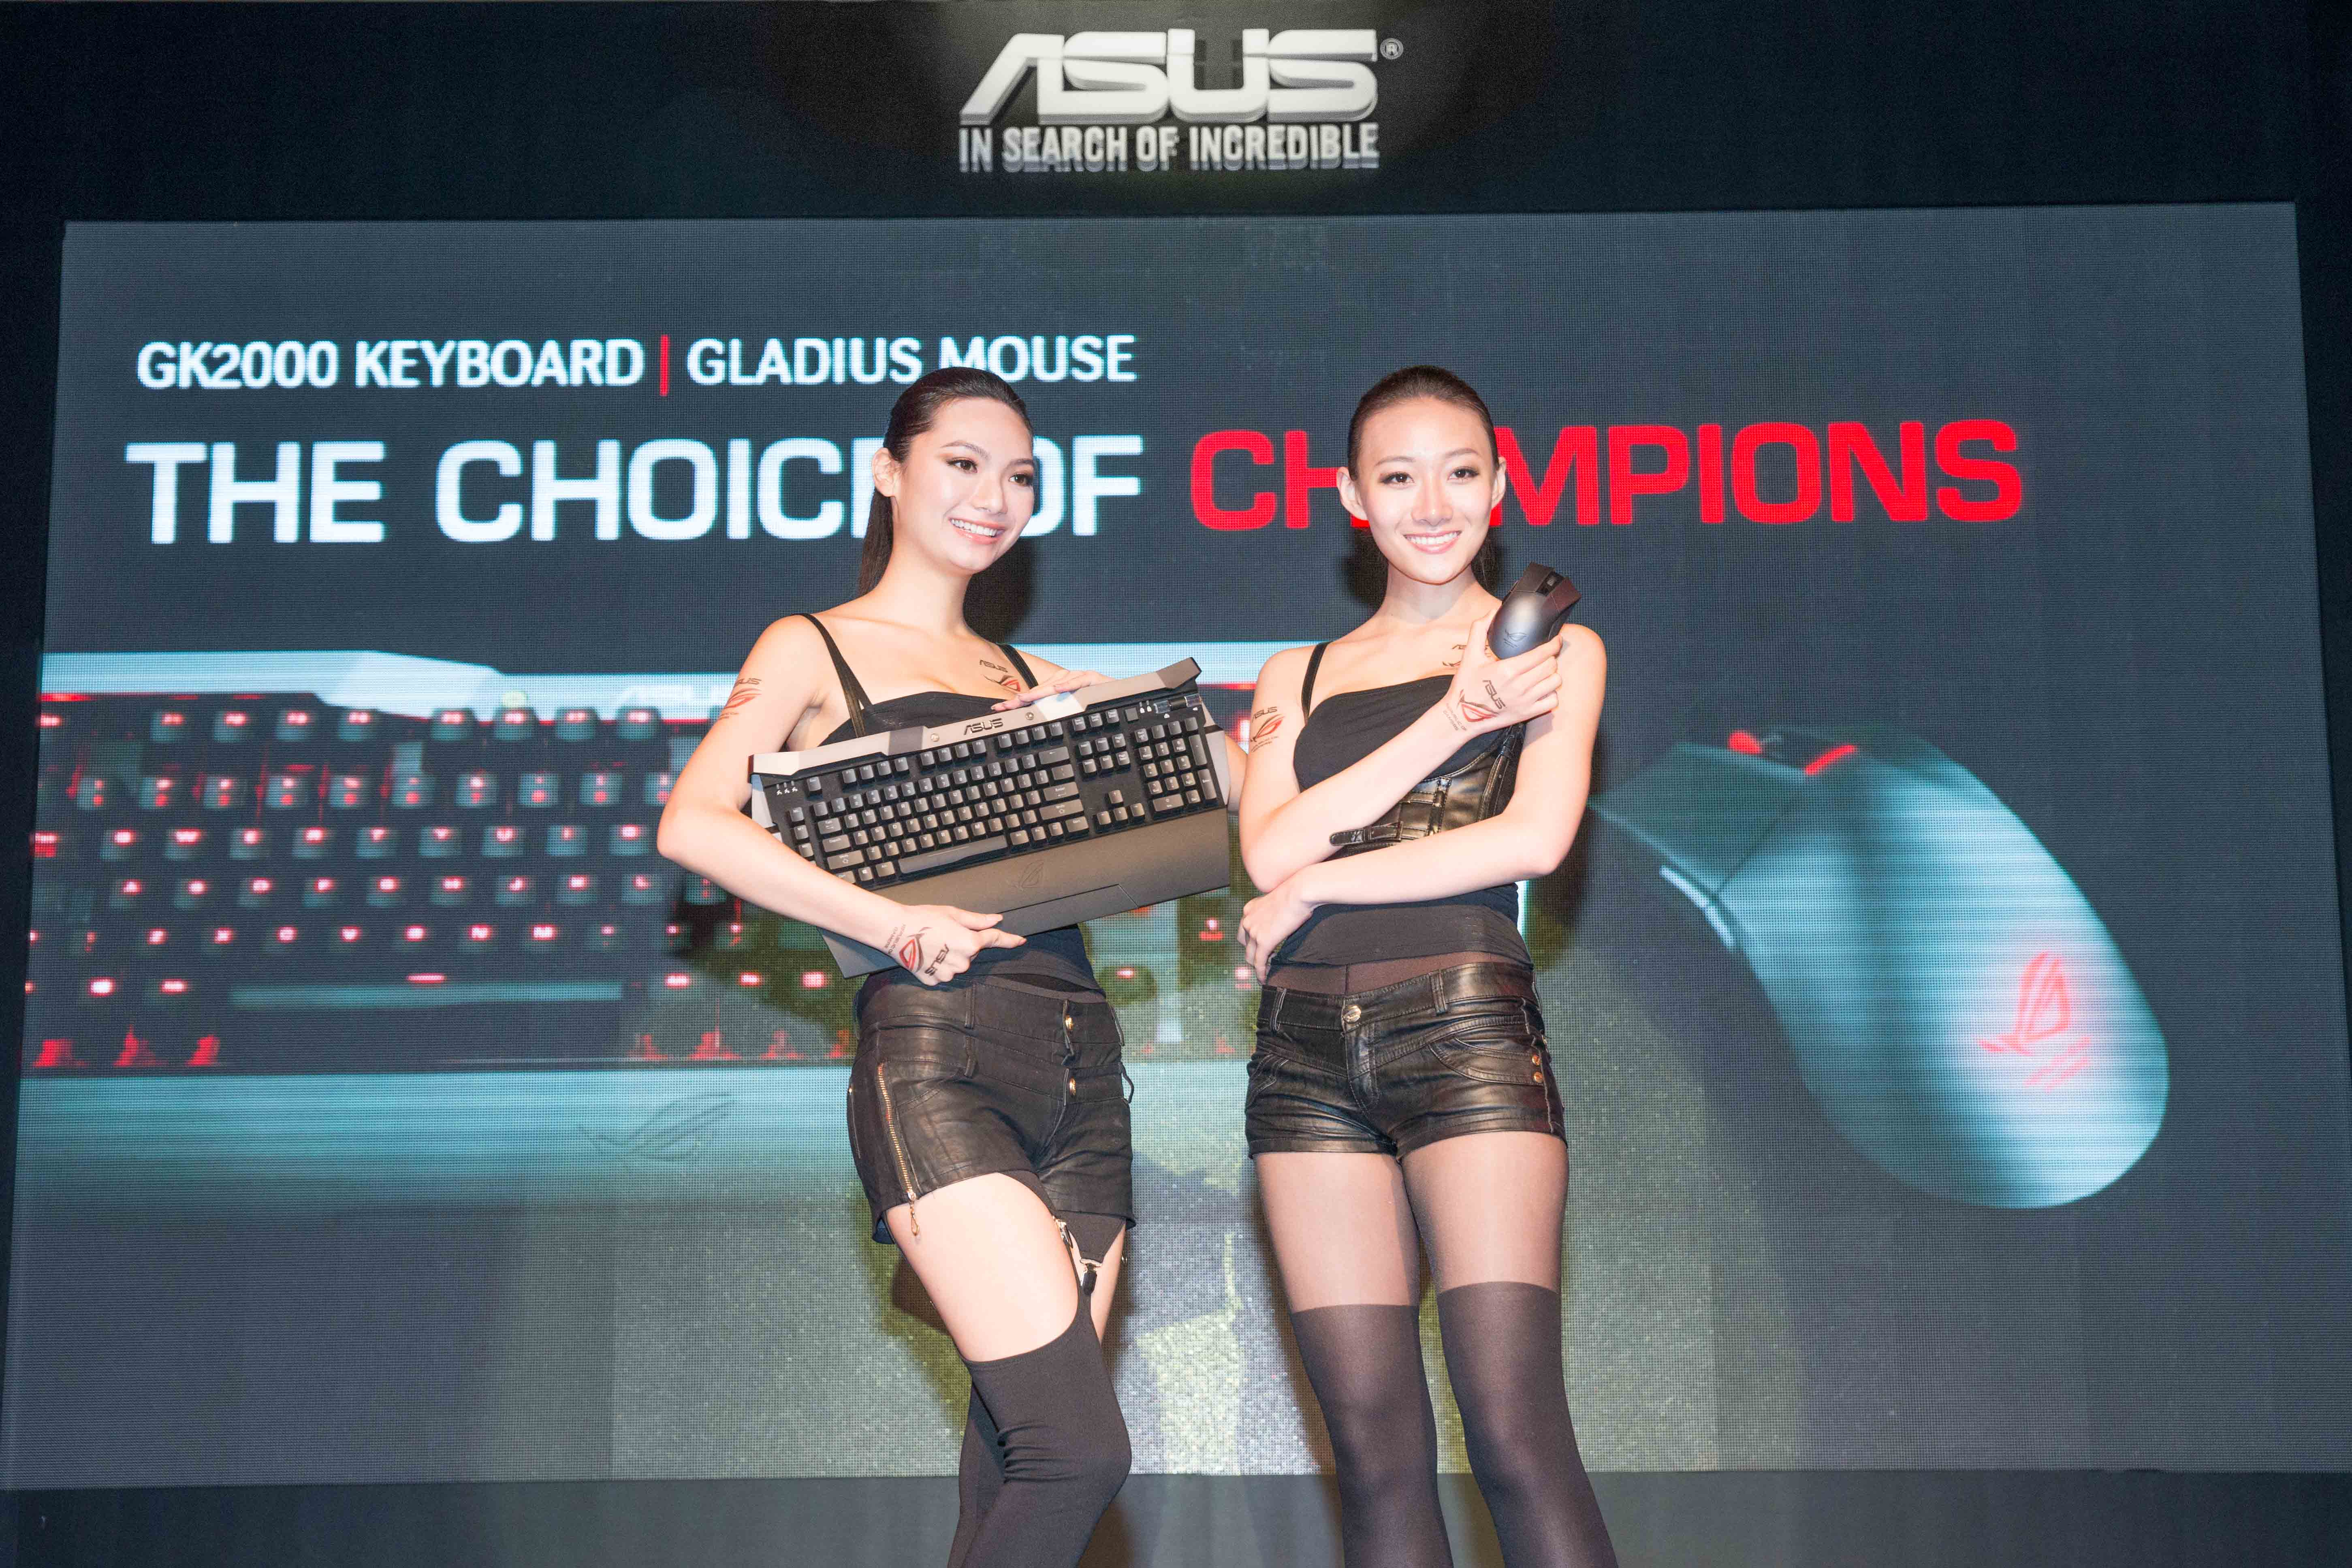 ASUS Republic of Gamers Launches Epic Gaming Equipment at Computex 2014 29